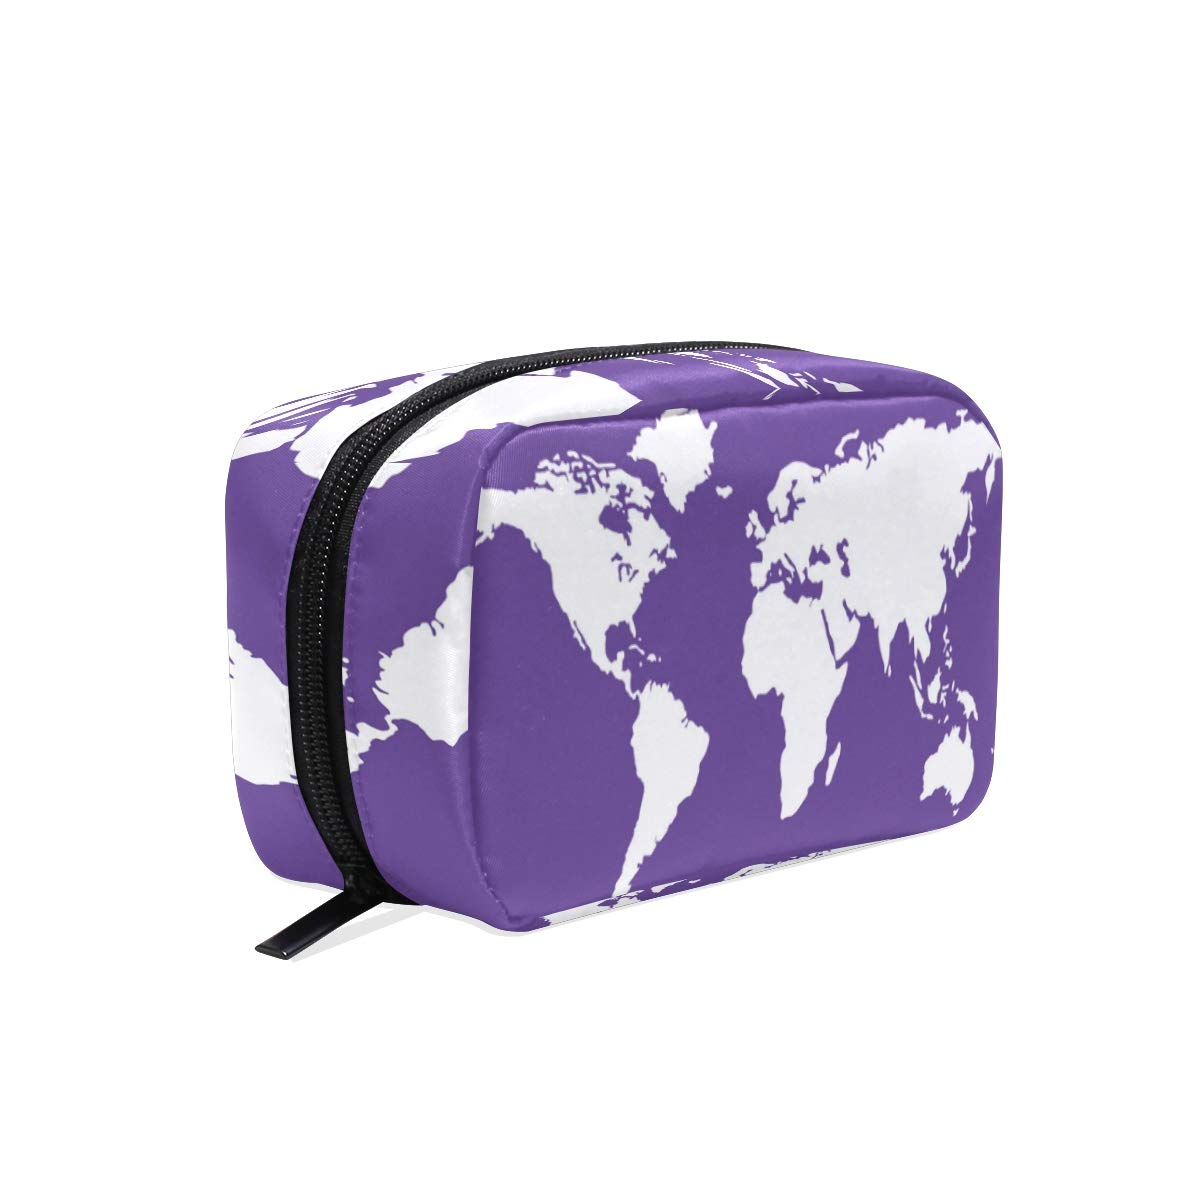 Cosmetic Bag Purple World Maps Customized Makeup Bags Square Organizer Portable Pouch Pencil Storage Case for Women